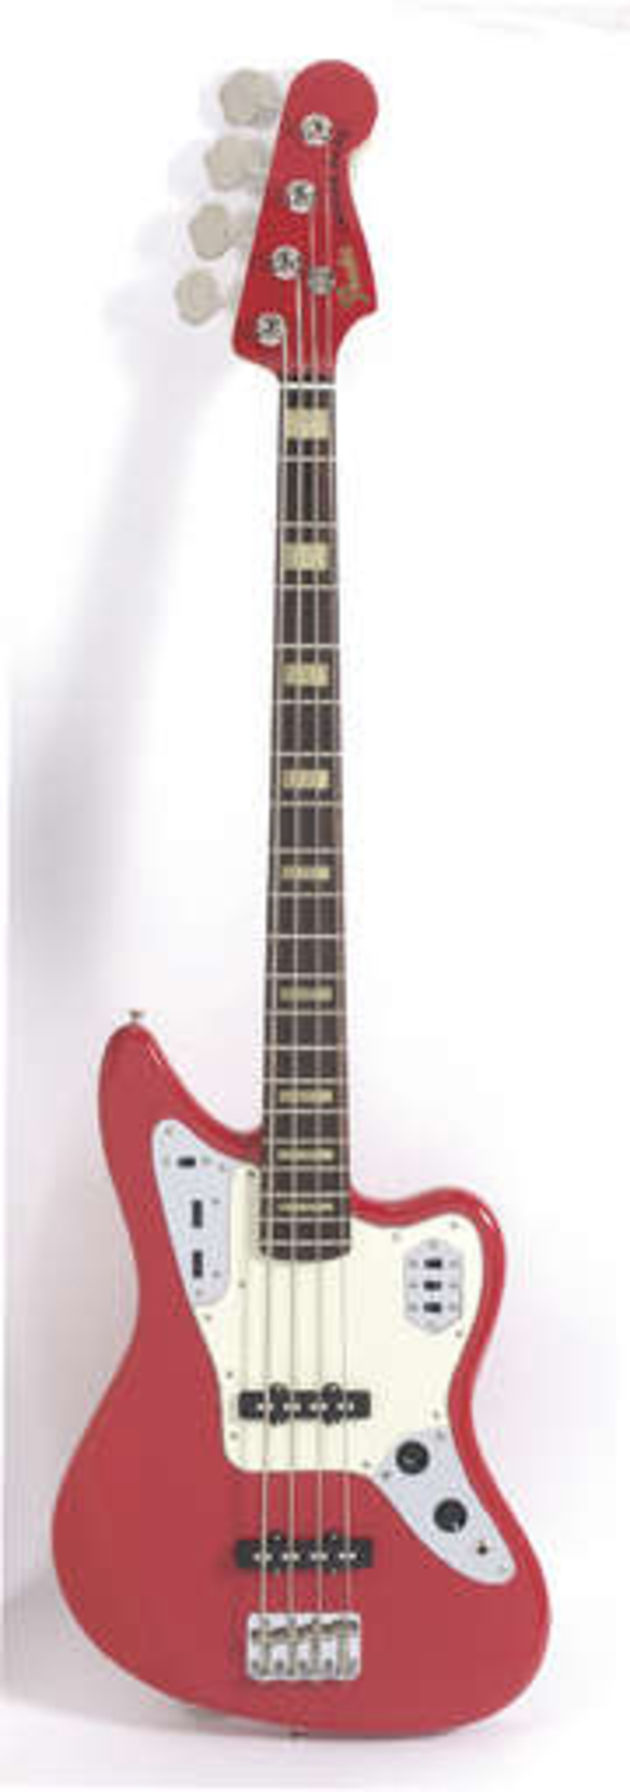 The Fender Jaguar Bass